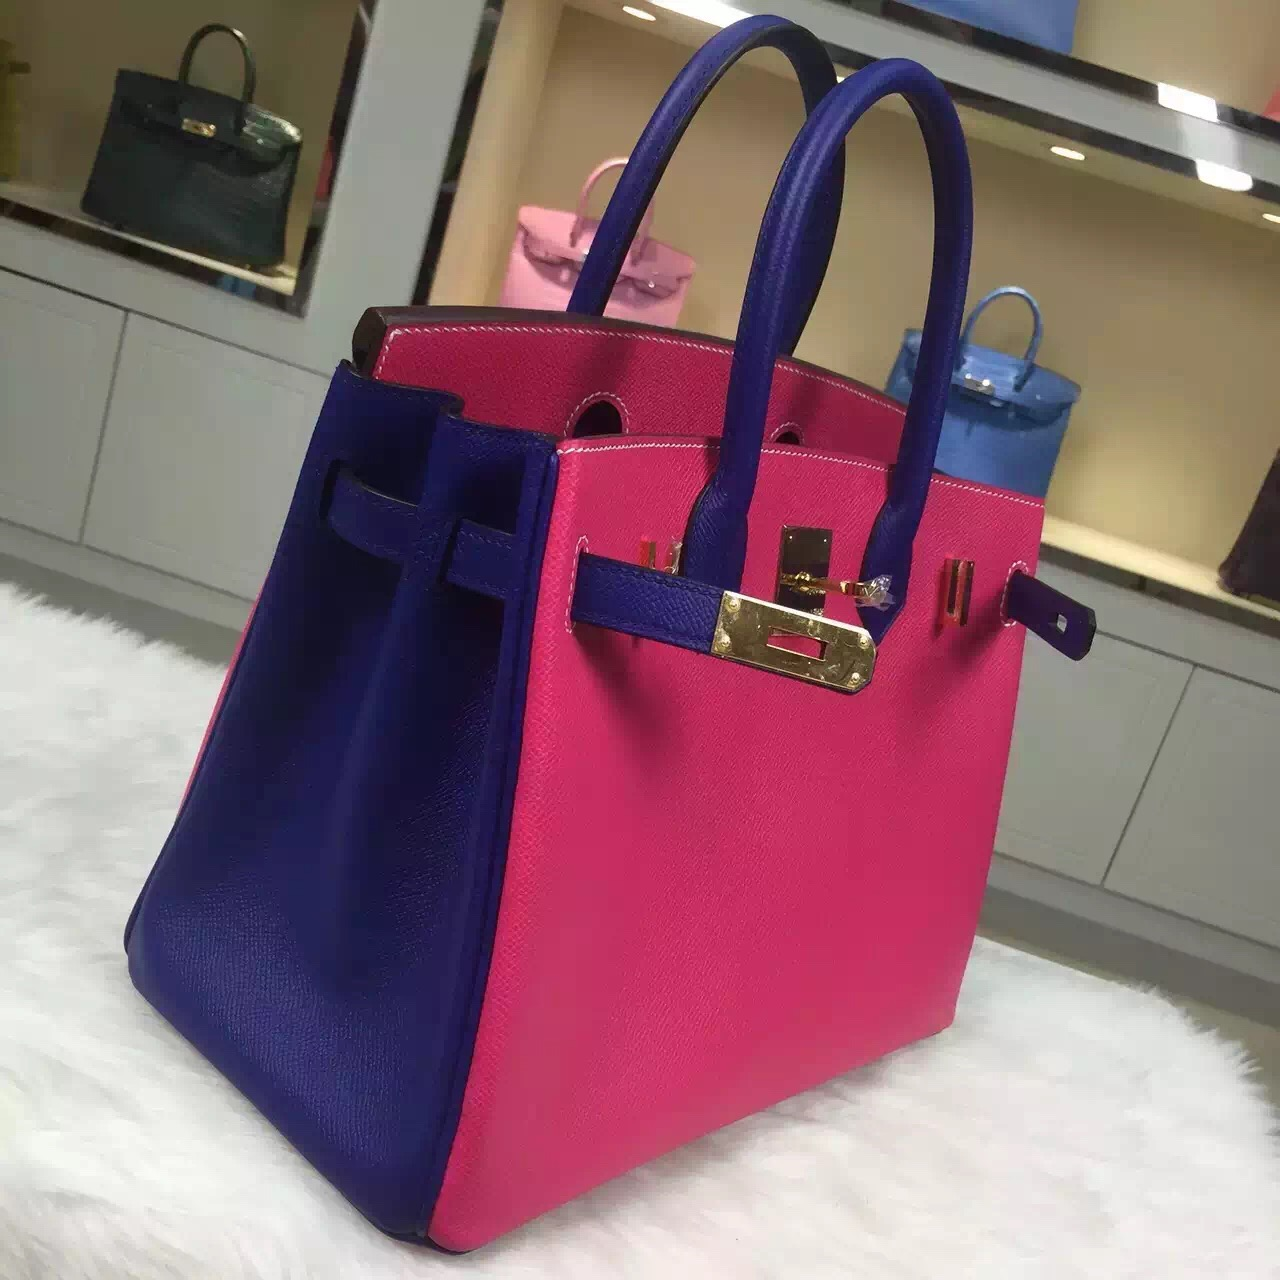 Discount Hermes E5 Candy Pink/7T Blue Electric Epsom Leather Birkin Bag 30CM